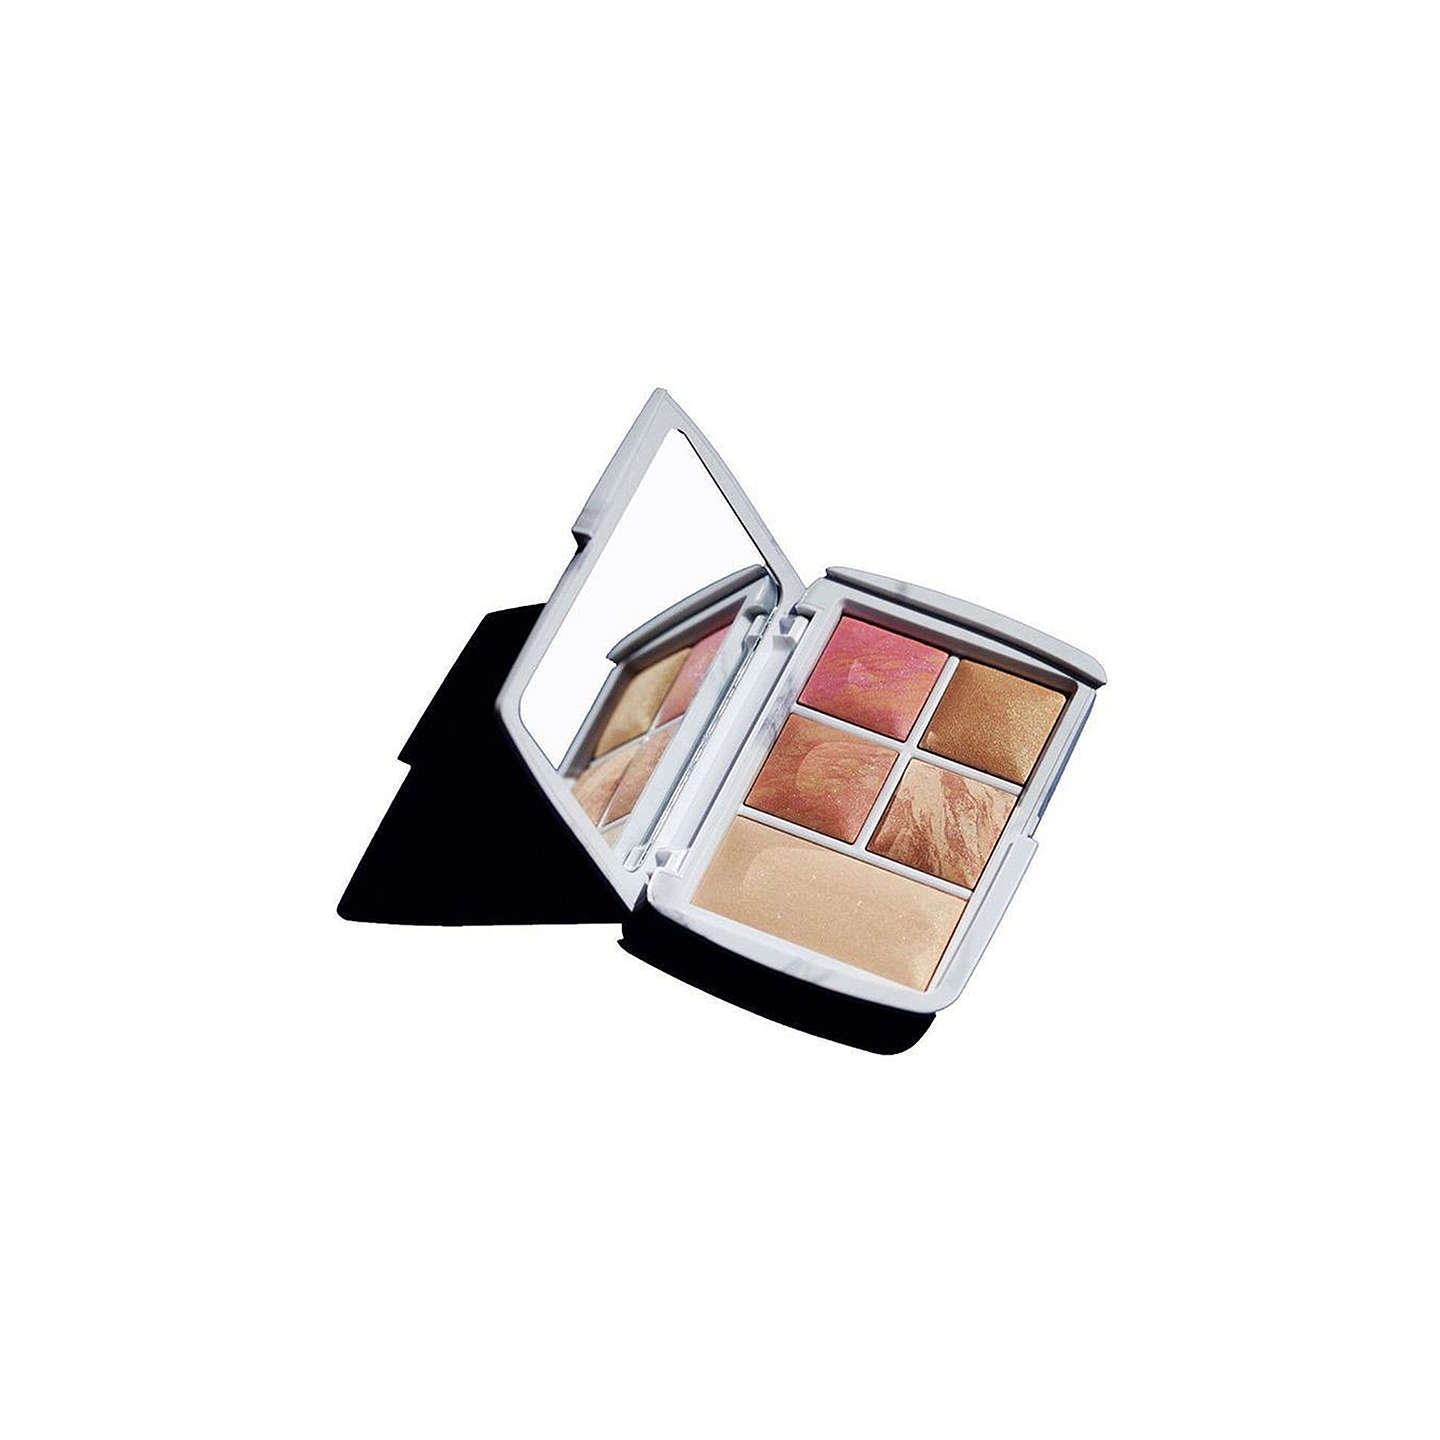 BuyHourglass Ambient® Lighting Limited Edition Makeup Set, Surreal Light Online at johnlewis.com